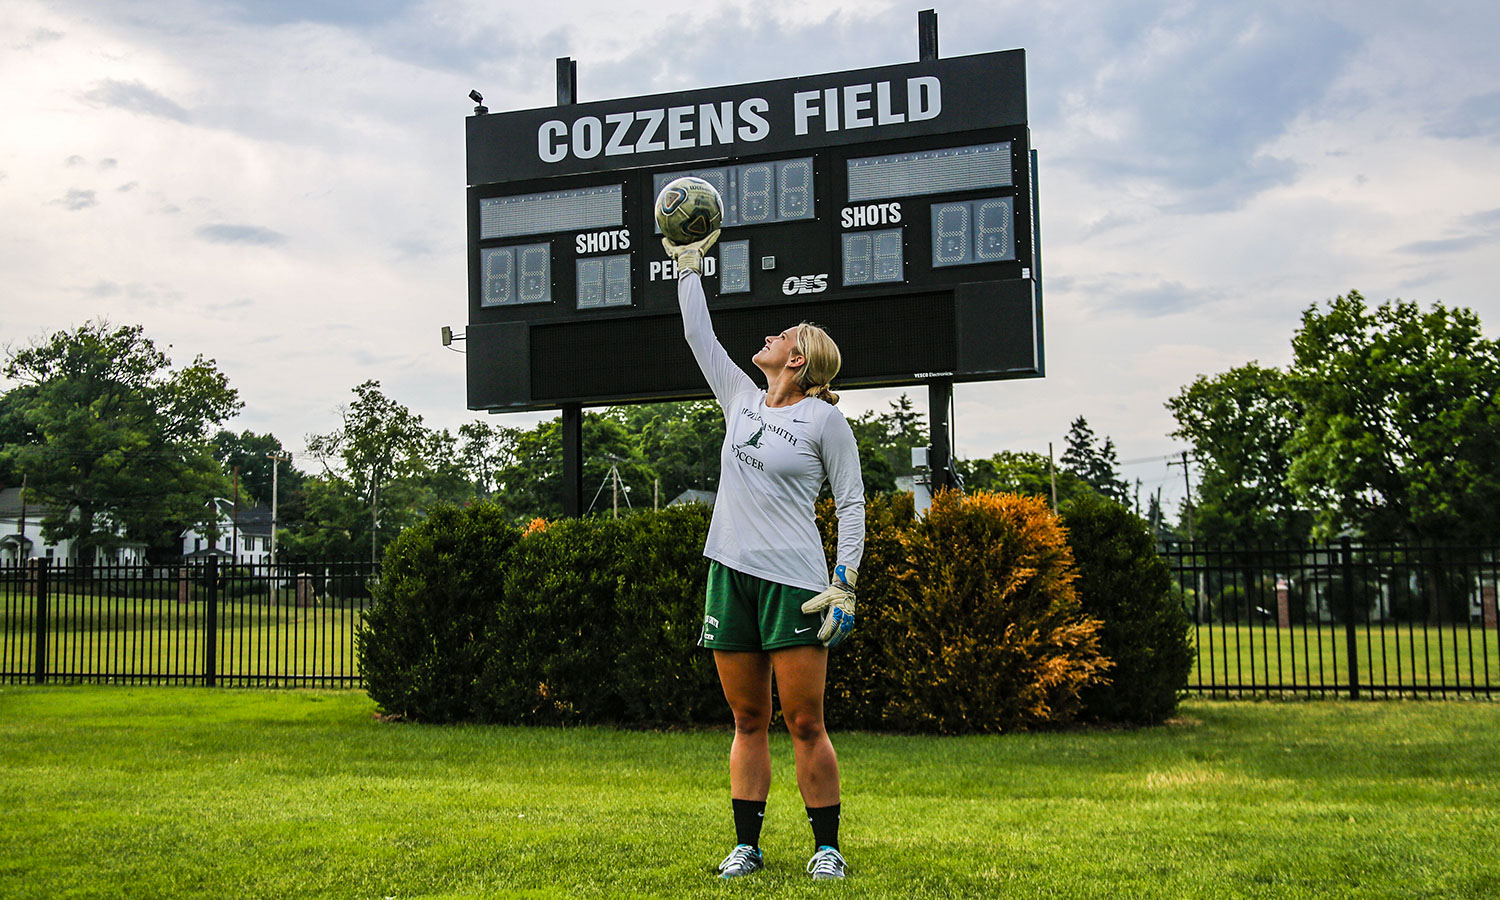 Ally Bryan '20, a Biology major and former varsity William Smith soccer player, stands on Cozzens Field. It is her favorite place on campus because of the amazing memories of her friends and teammates both in practice and in games. Ally is on campus this summer doing genetics research with Professor Cosentino.